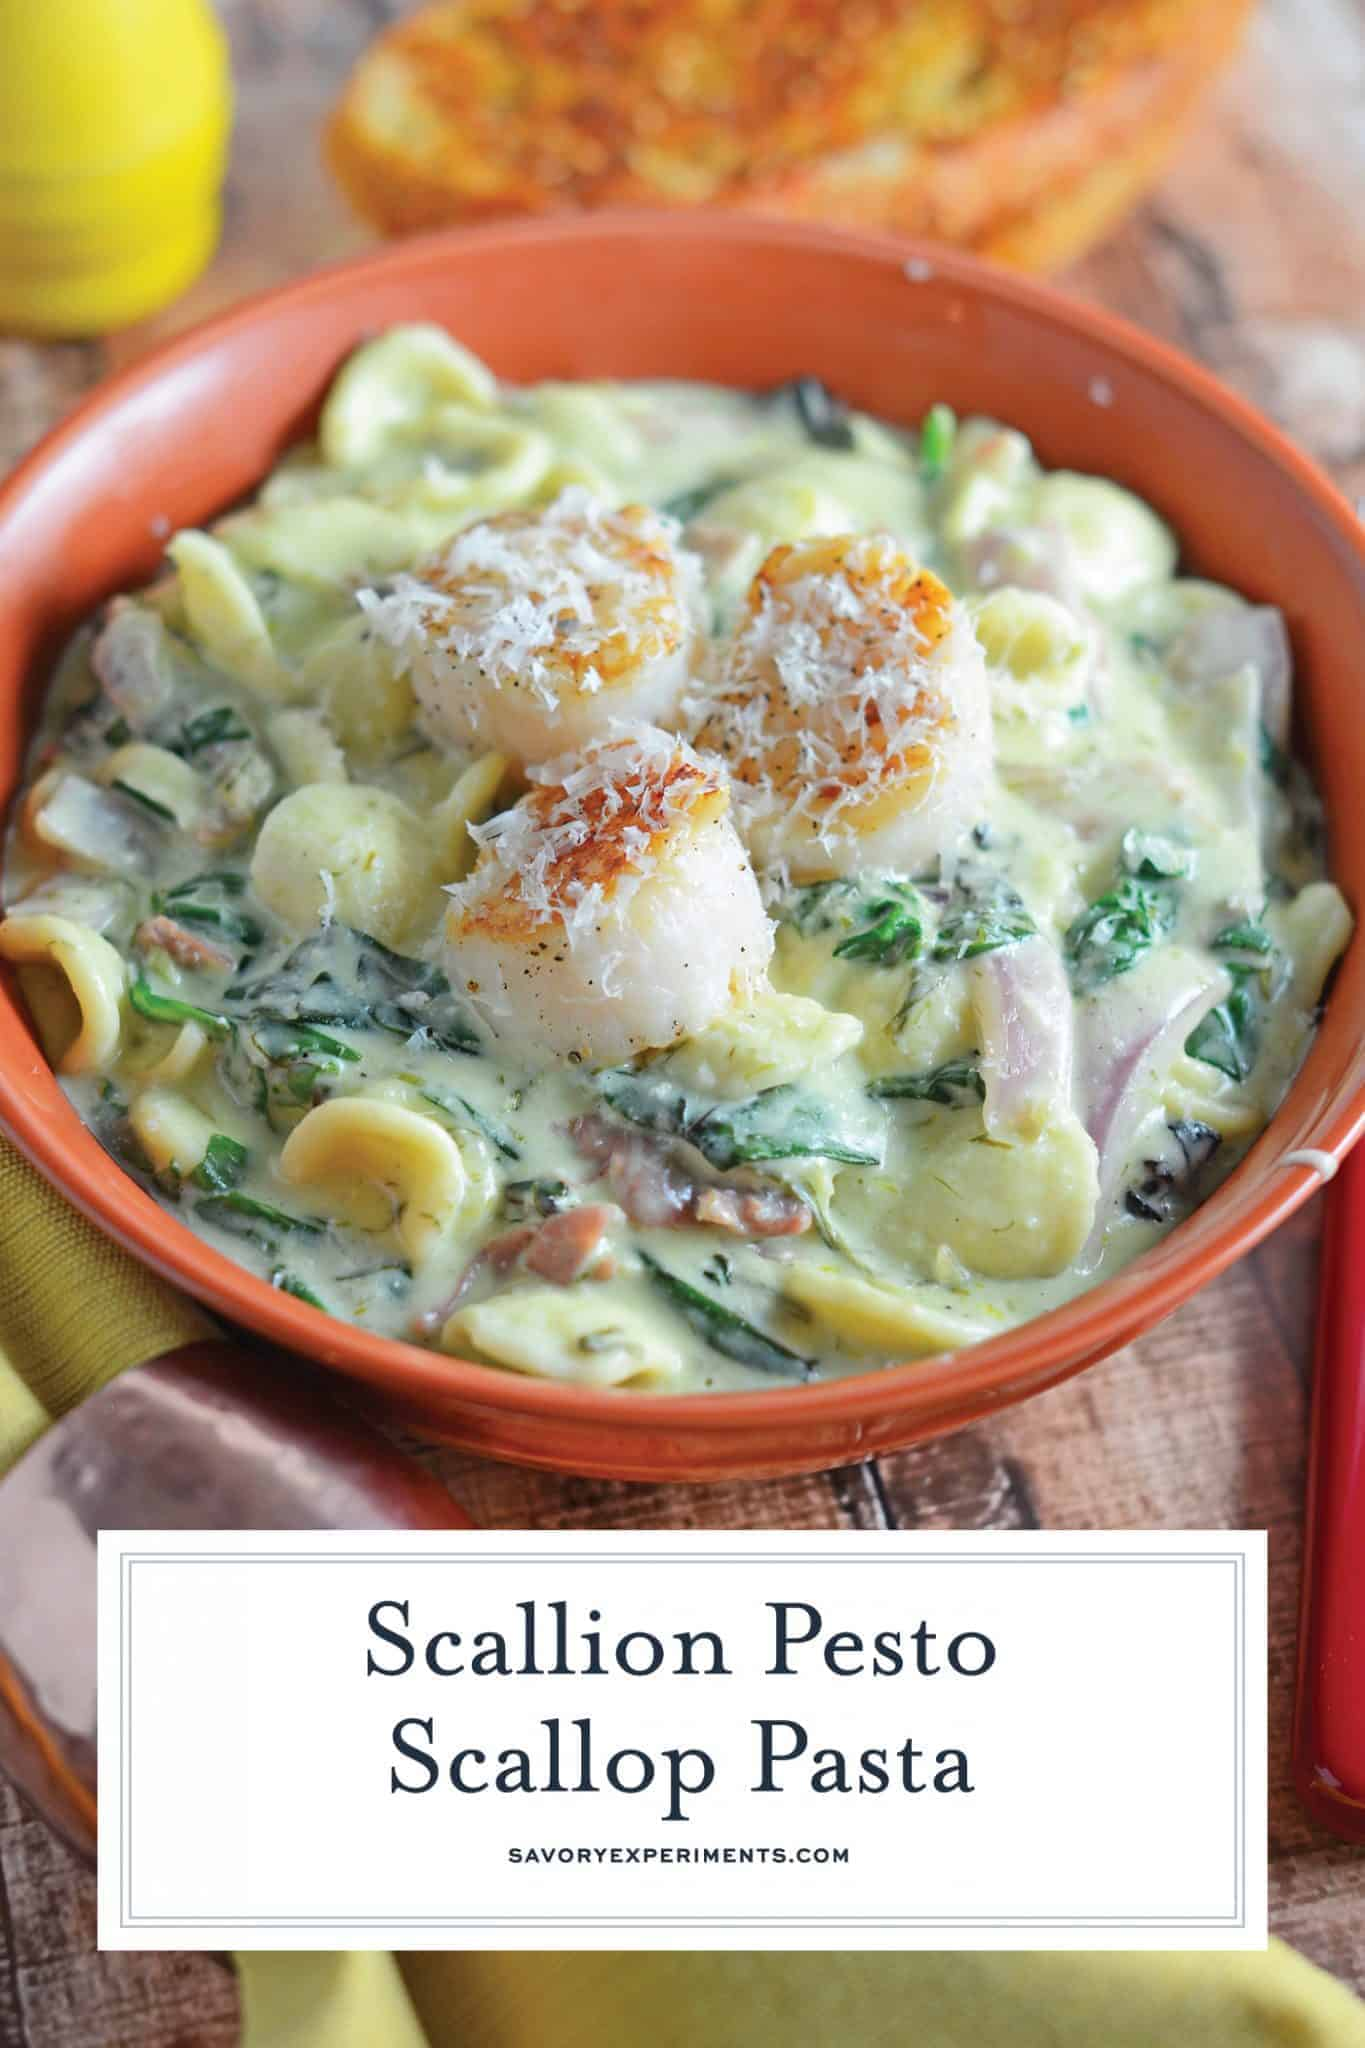 Scallion Pesto Scallop Pasta is a restaurant quality dish, creamy pasta sauce with garlic, Swiss chard, prosciutto and seared scallops. #pastarecipes #scalloprecipes www.savoryexperiments.com